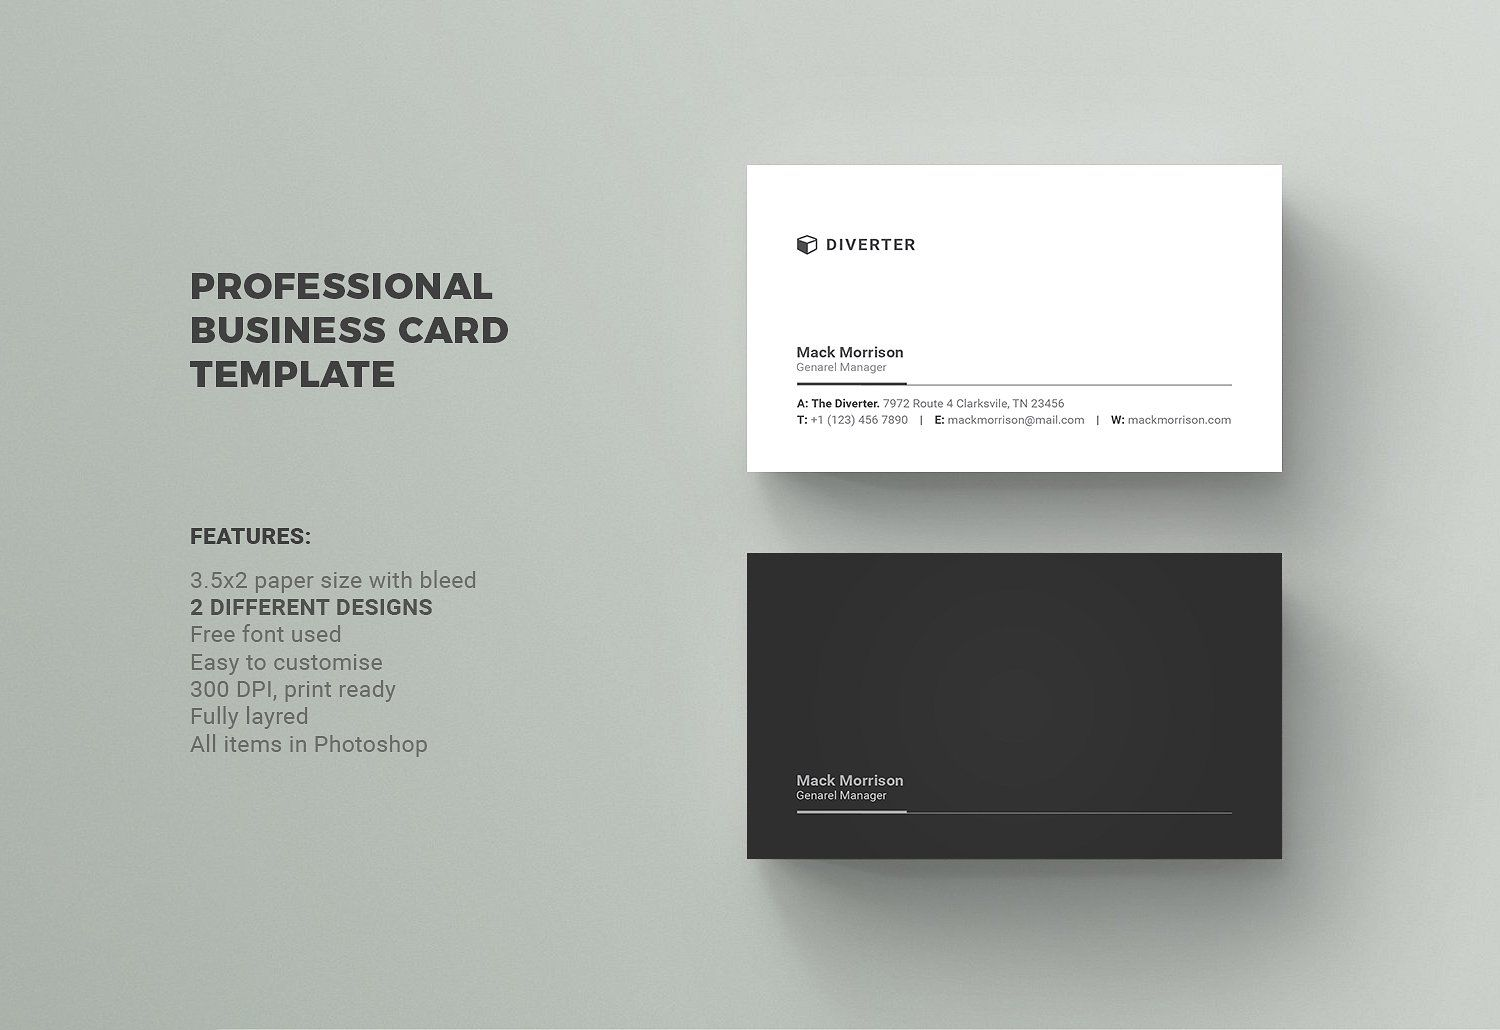 Business Card Business Card Template Design Professional